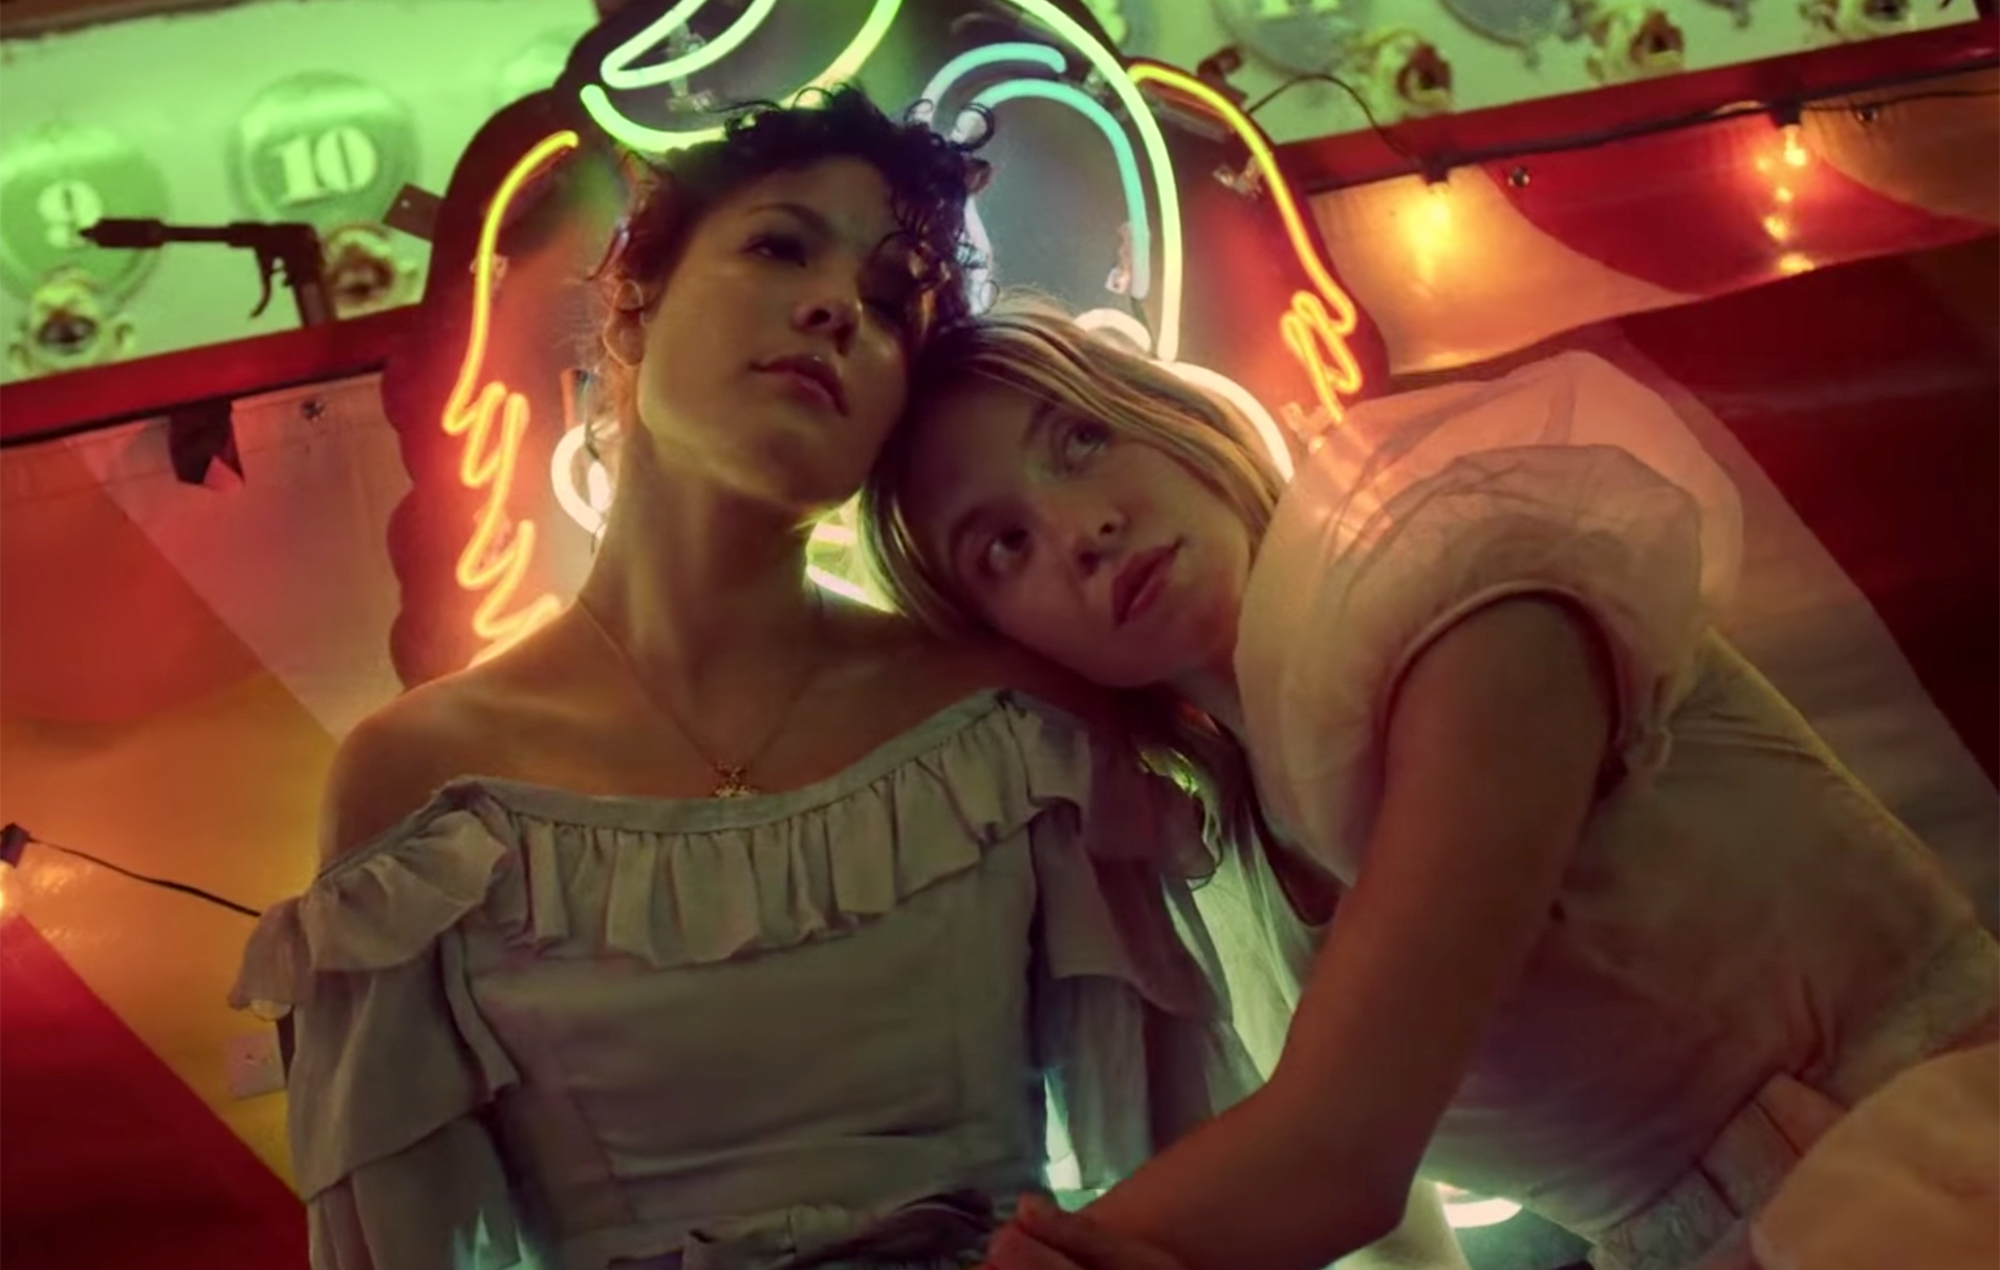 Halsey heads to the carnival with Euphoria star Sydney Sweeney in Graveyard music video